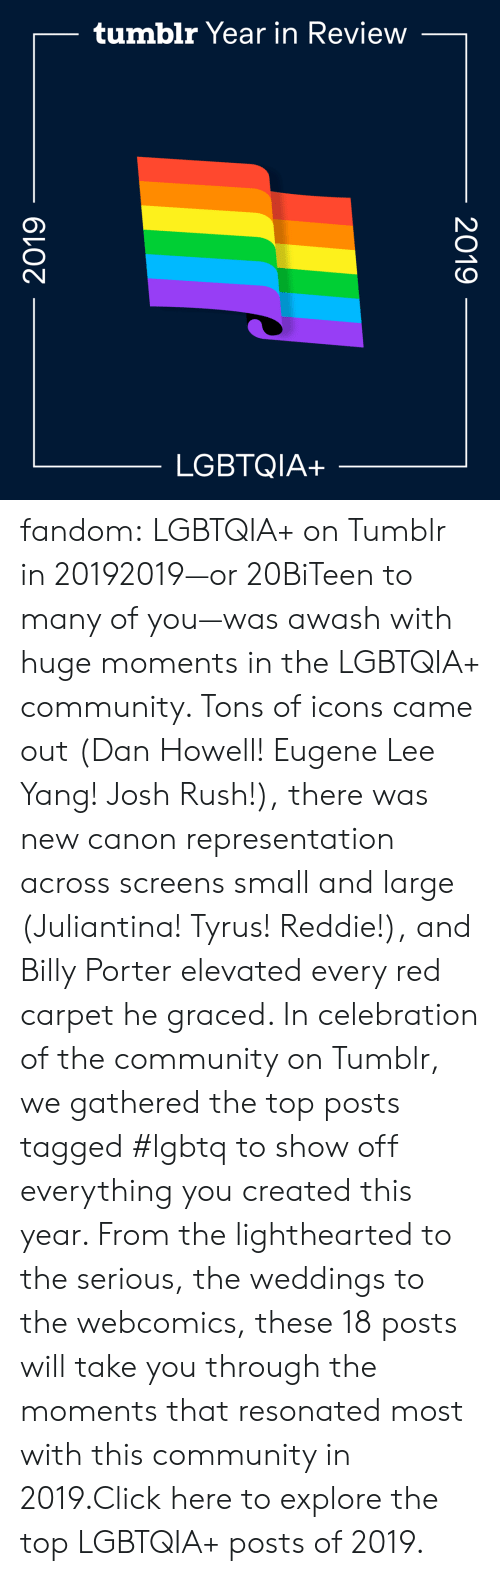 Click: tumblr Year in Review  LGBTQIA+  2019  2019 fandom:  LGBTQIA+ on Tumblr in 20192019—or 20BiTeen to many of you—was awash with huge moments in the LGBTQIA+ community. Tons of icons came out (Dan Howell! Eugene Lee Yang! Josh Rush!), there was new canon representation across screens small and large (Juliantina! Tyrus! Reddie!), and Billy Porter elevated every red carpet he graced. In celebration of the community on Tumblr, we gathered the top posts tagged #lgbtq to show off everything you created this year. From the lighthearted to the serious, the weddings to the webcomics, these 18 posts will take you through the moments that resonated most with this community in 2019.Click here to explore the top LGBTQIA+ posts of 2019.